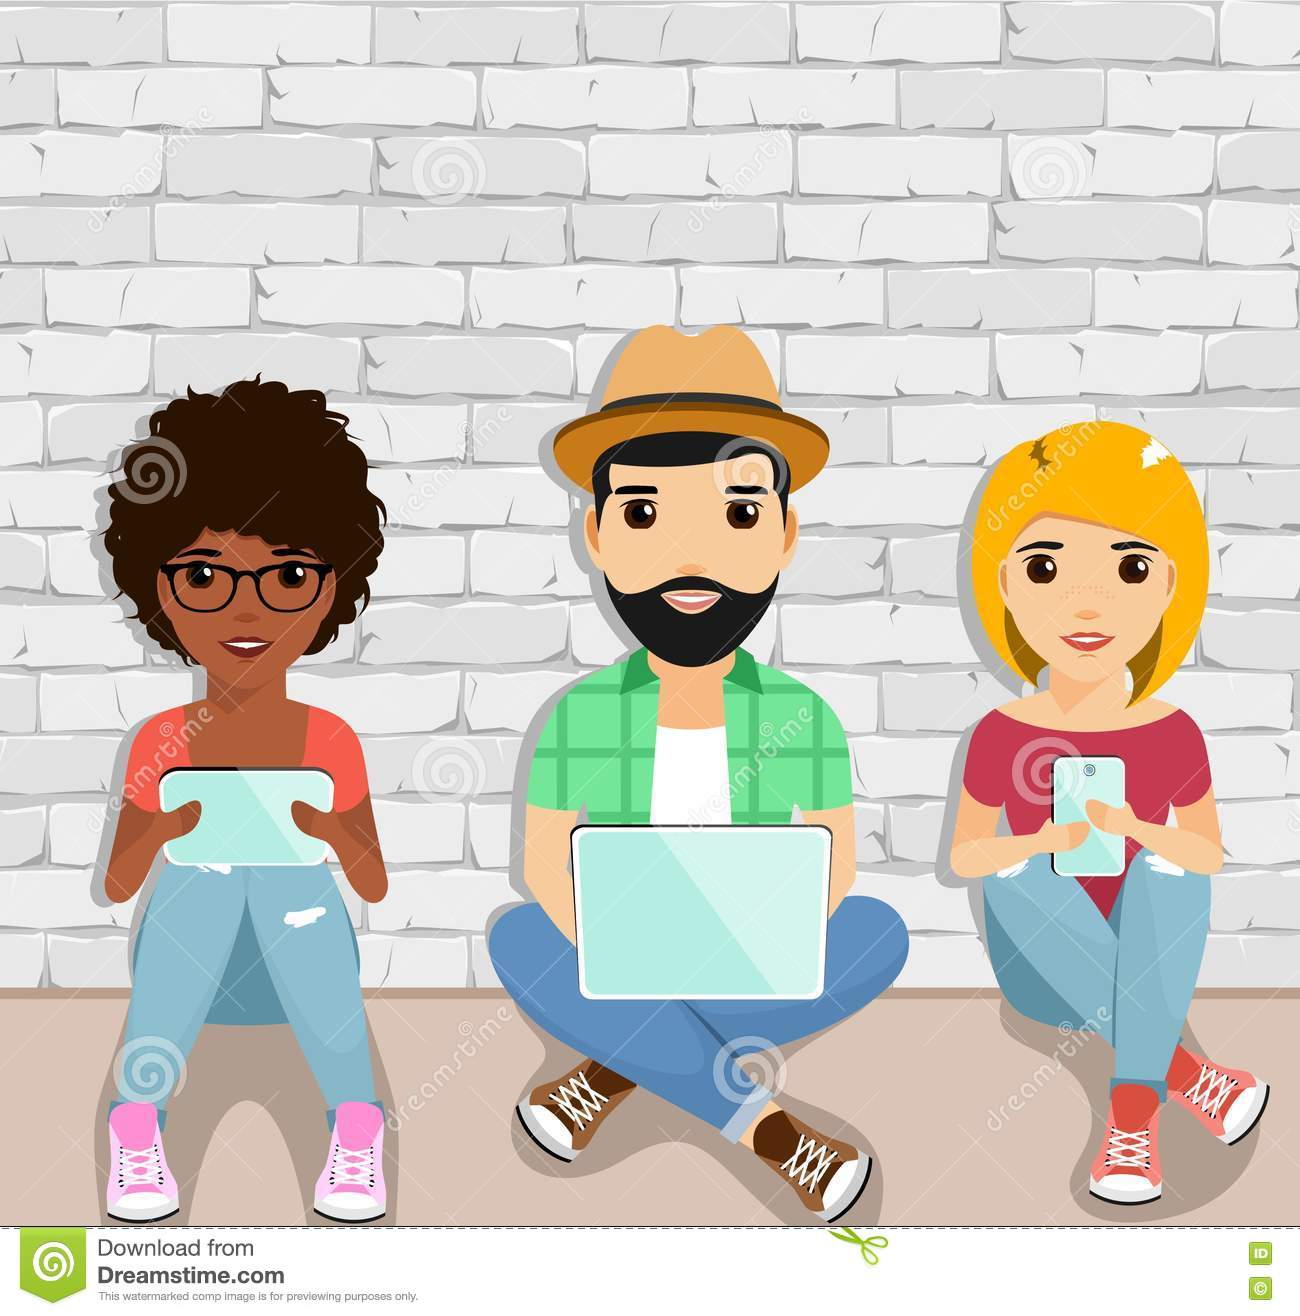 Modern gadgets and youth